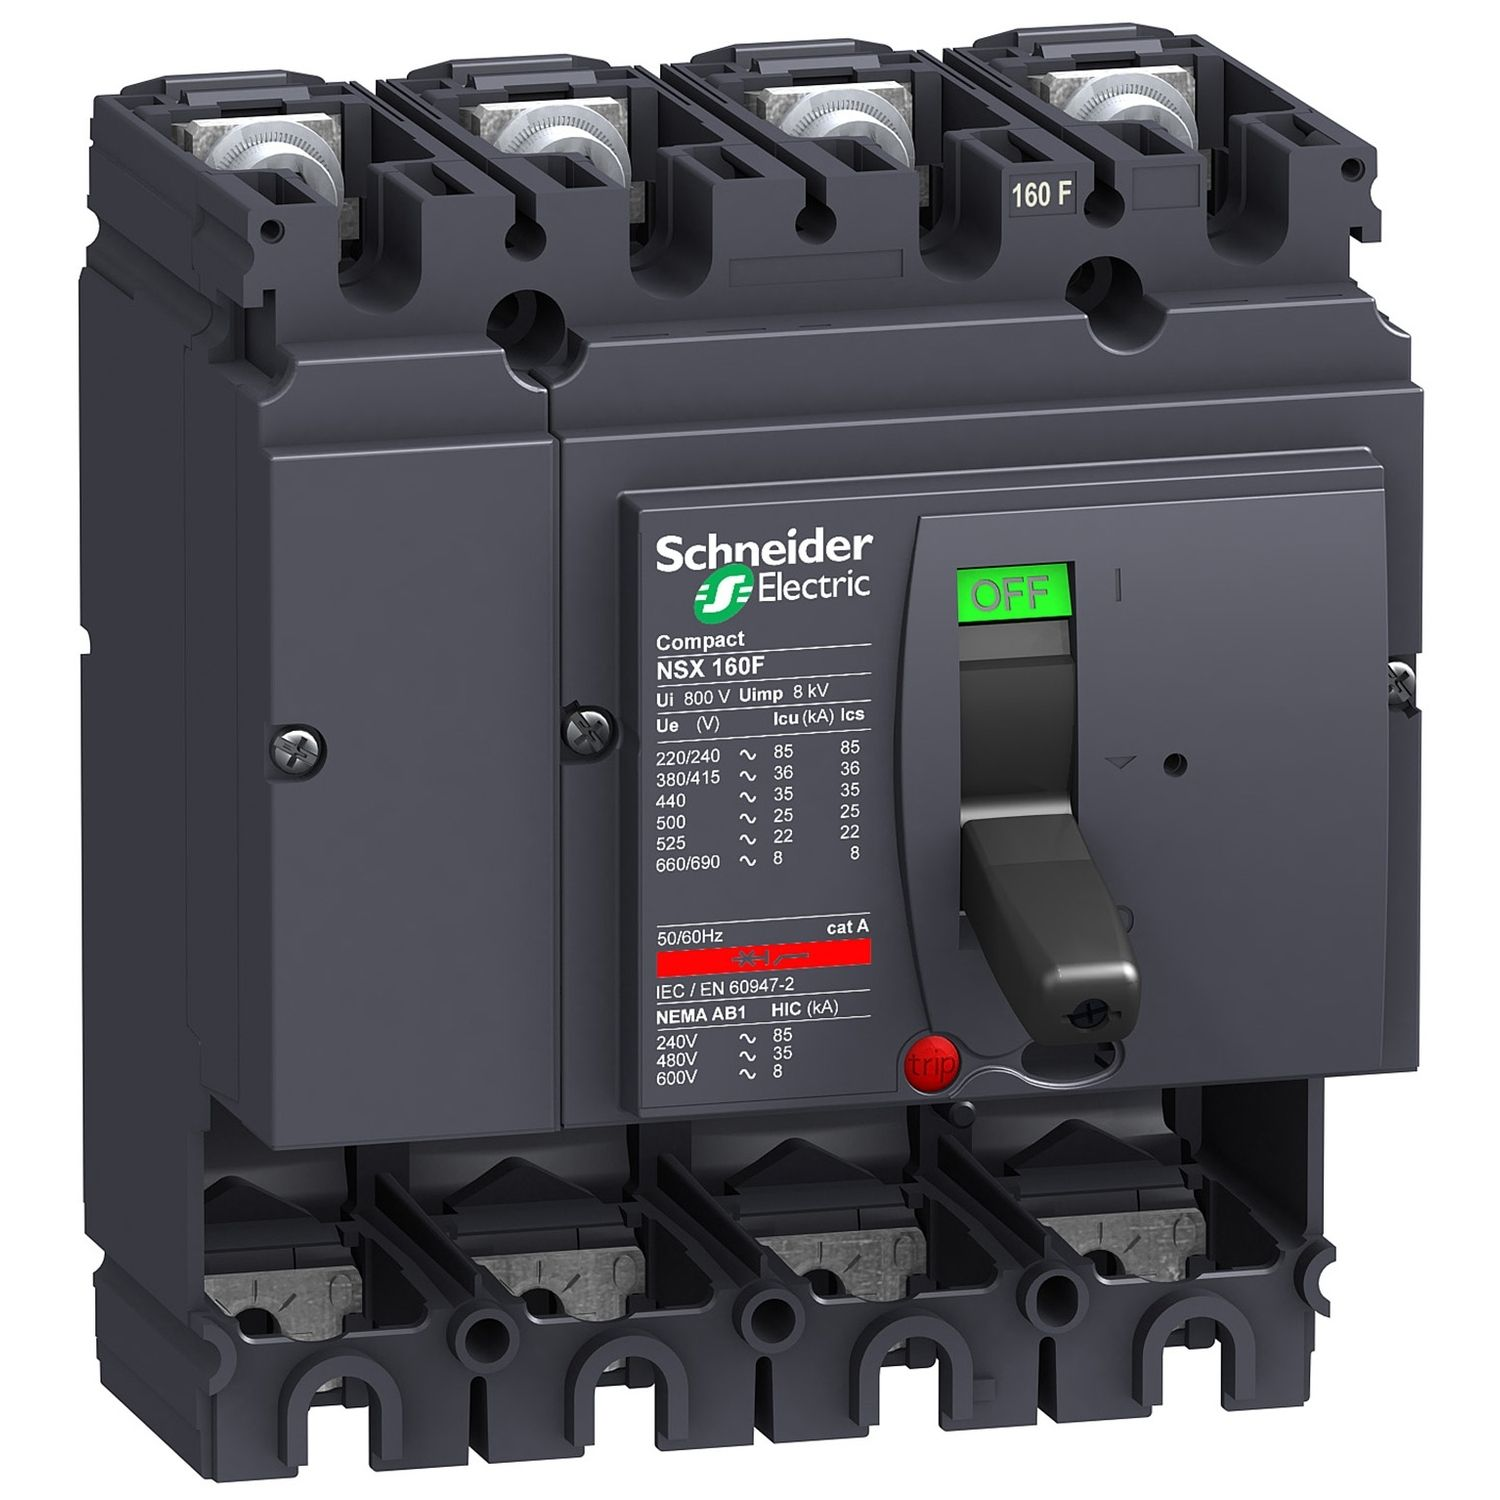 CIRCUIT BREAKER COMPACT NSX160F, WITHOUT TRIP UNIT, 4P: SCHNLV430408